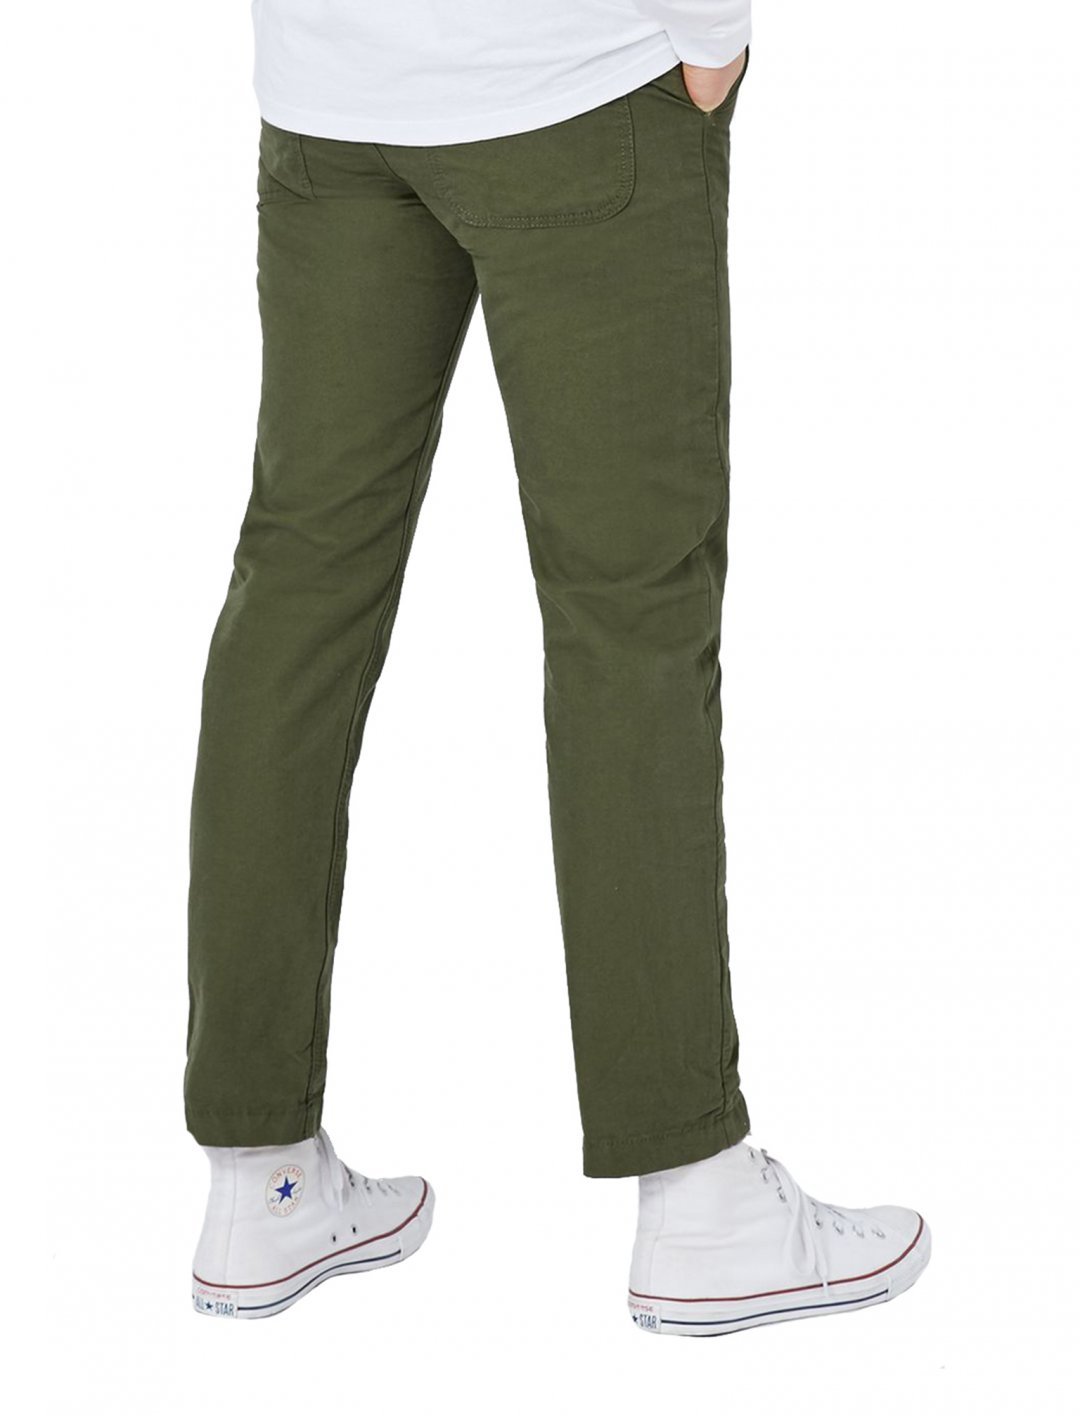 Khaki Fit Chinos Clothing Topman